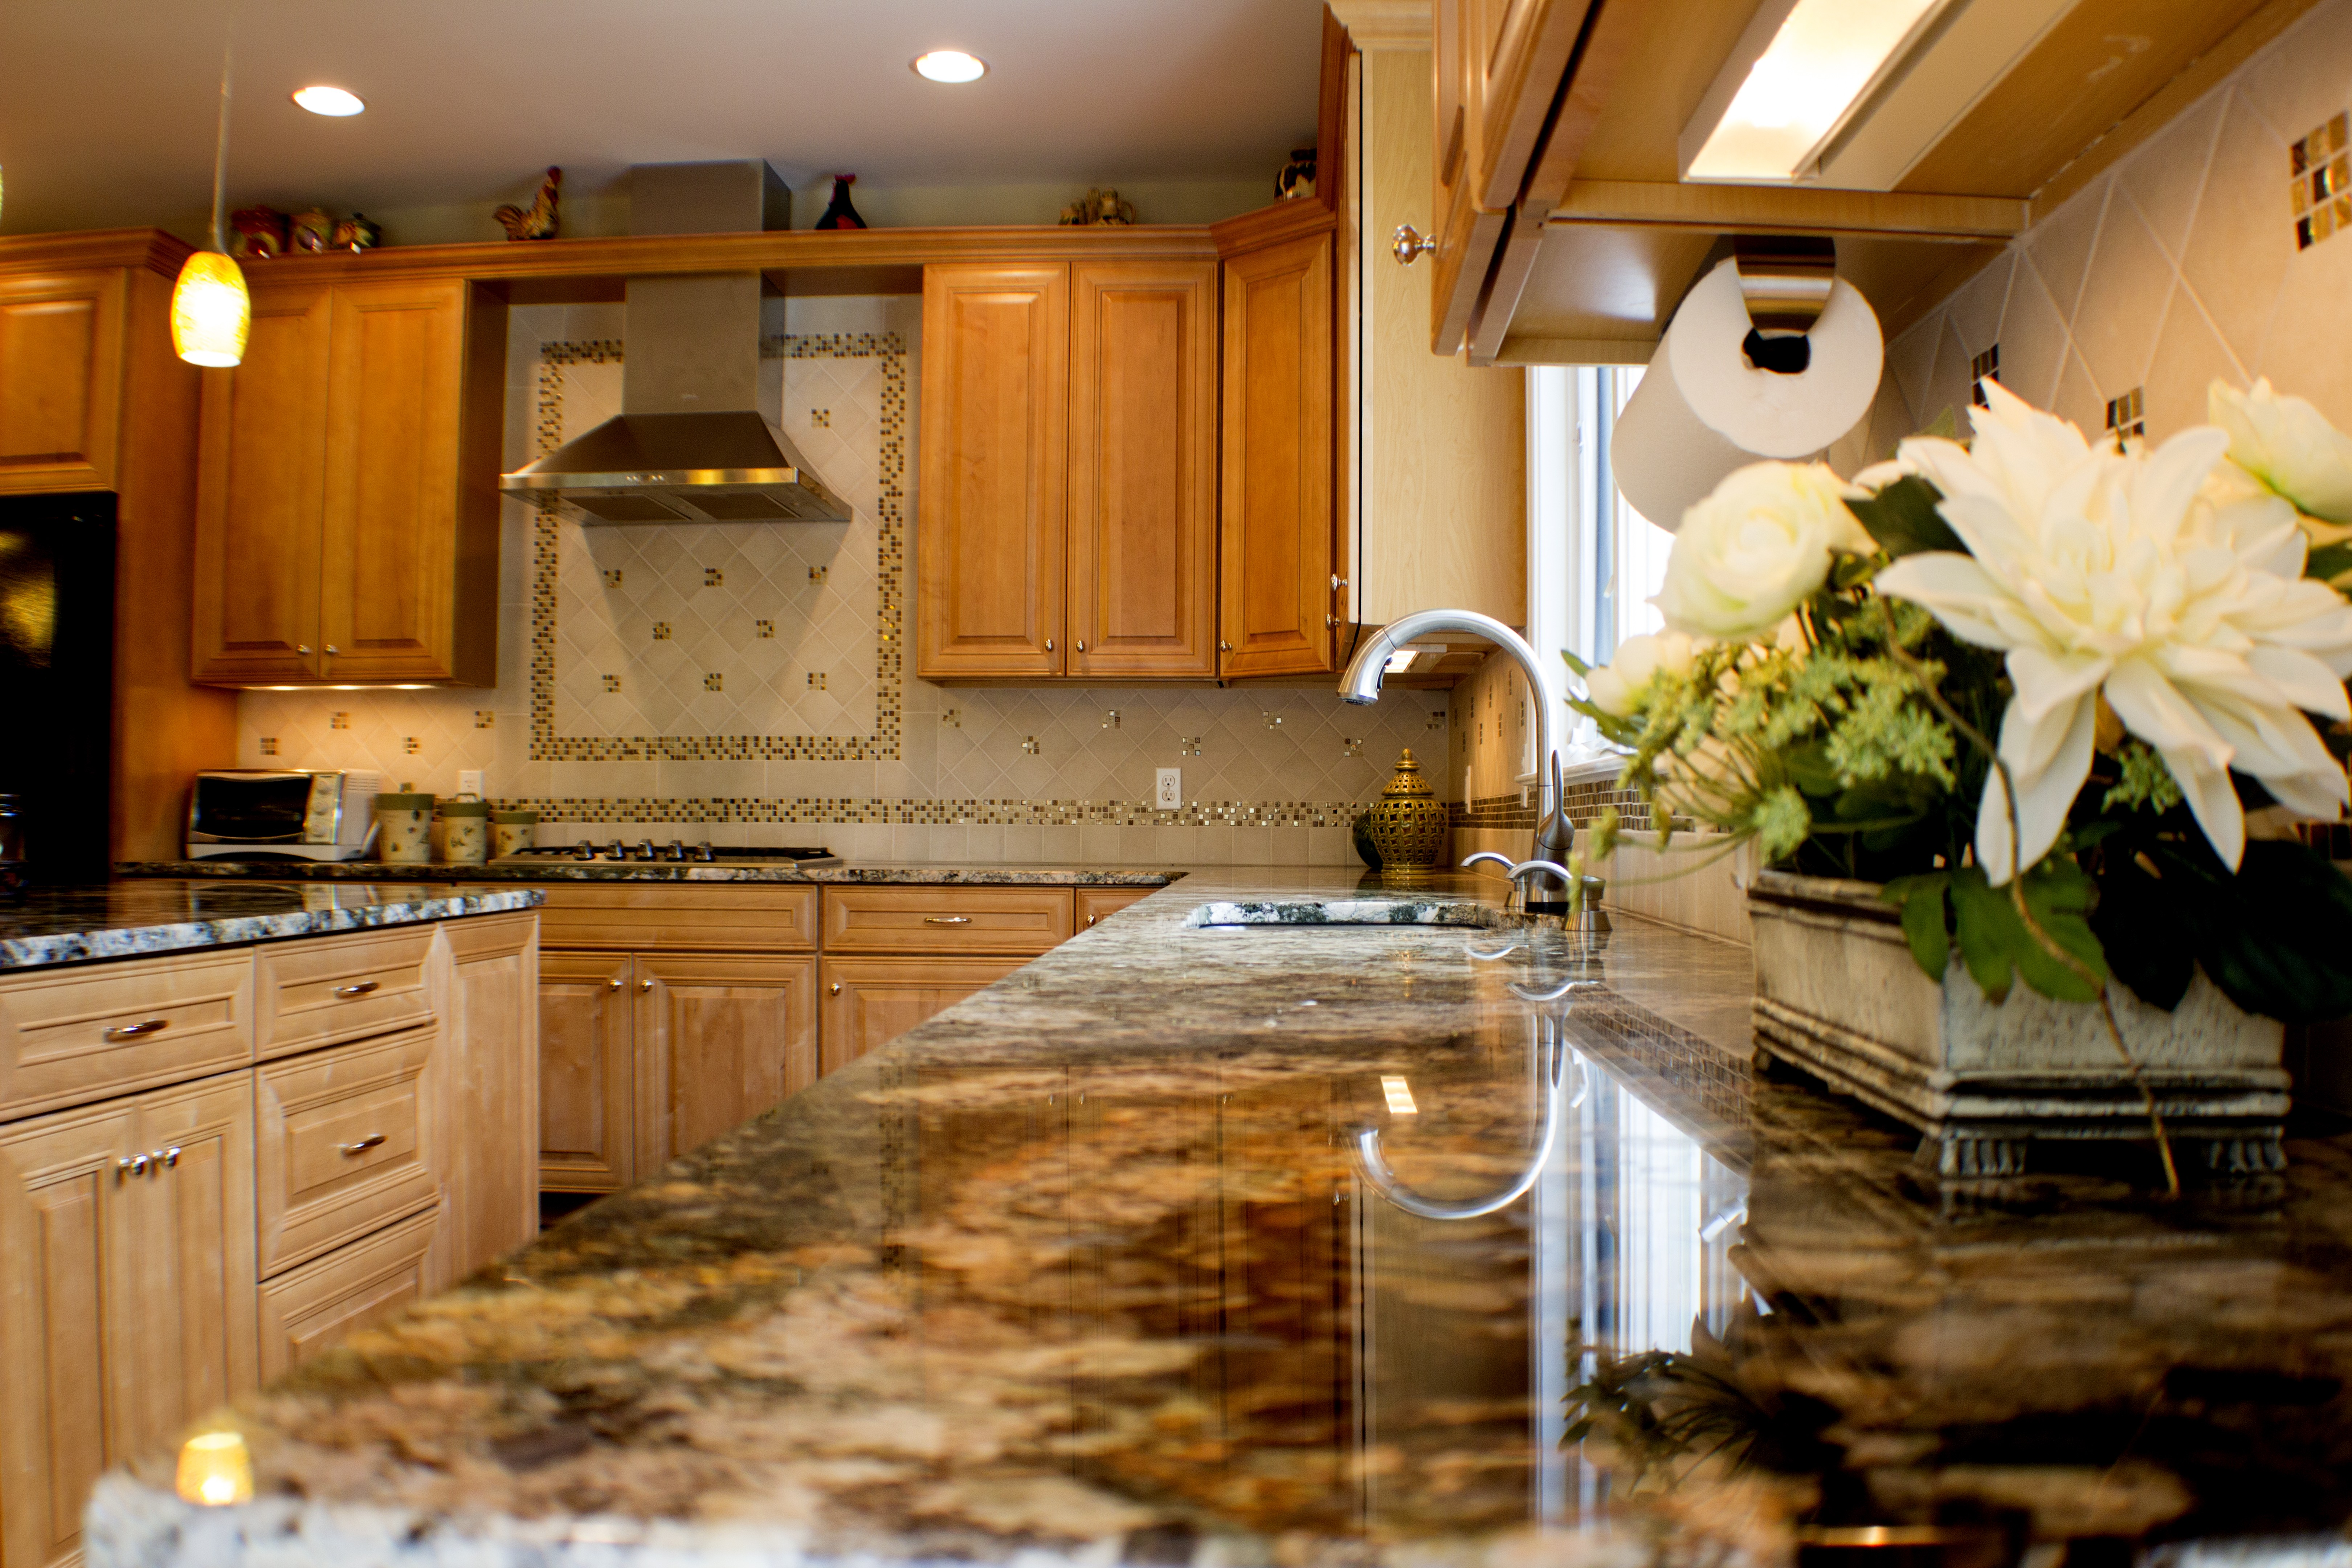 Kitchen Remodeling Nj Ideas Glamorous Nj Kitchen Remodeling Questions And Answers From The Pros Inspiration